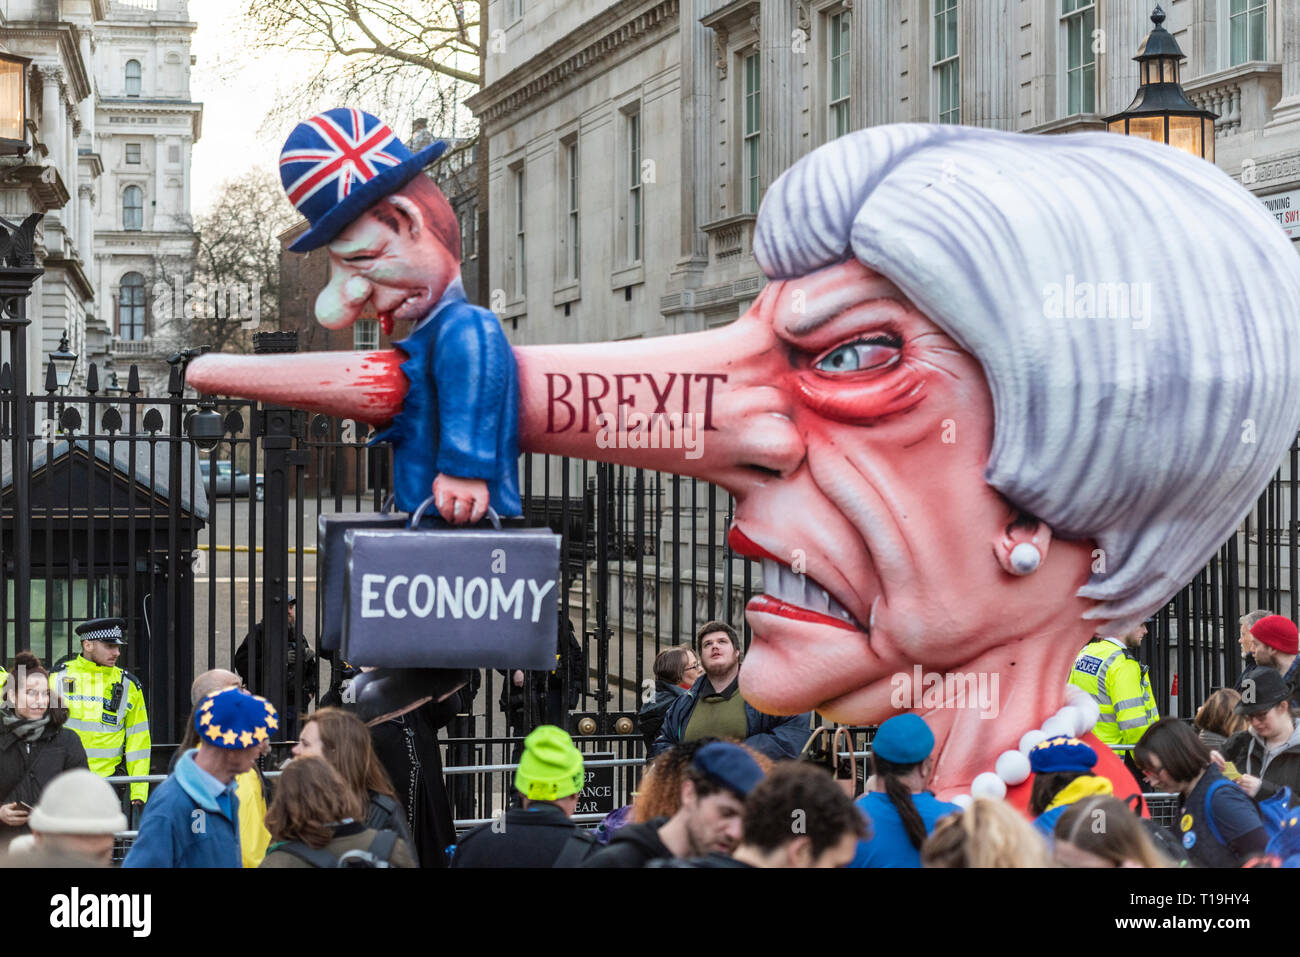 put-it-to-the-people-march-london-a-huge-theresa-may-effigy-mocking-her-brexit-deal-positioned-outside-downing-street-london-uk-T19HY4.jpg